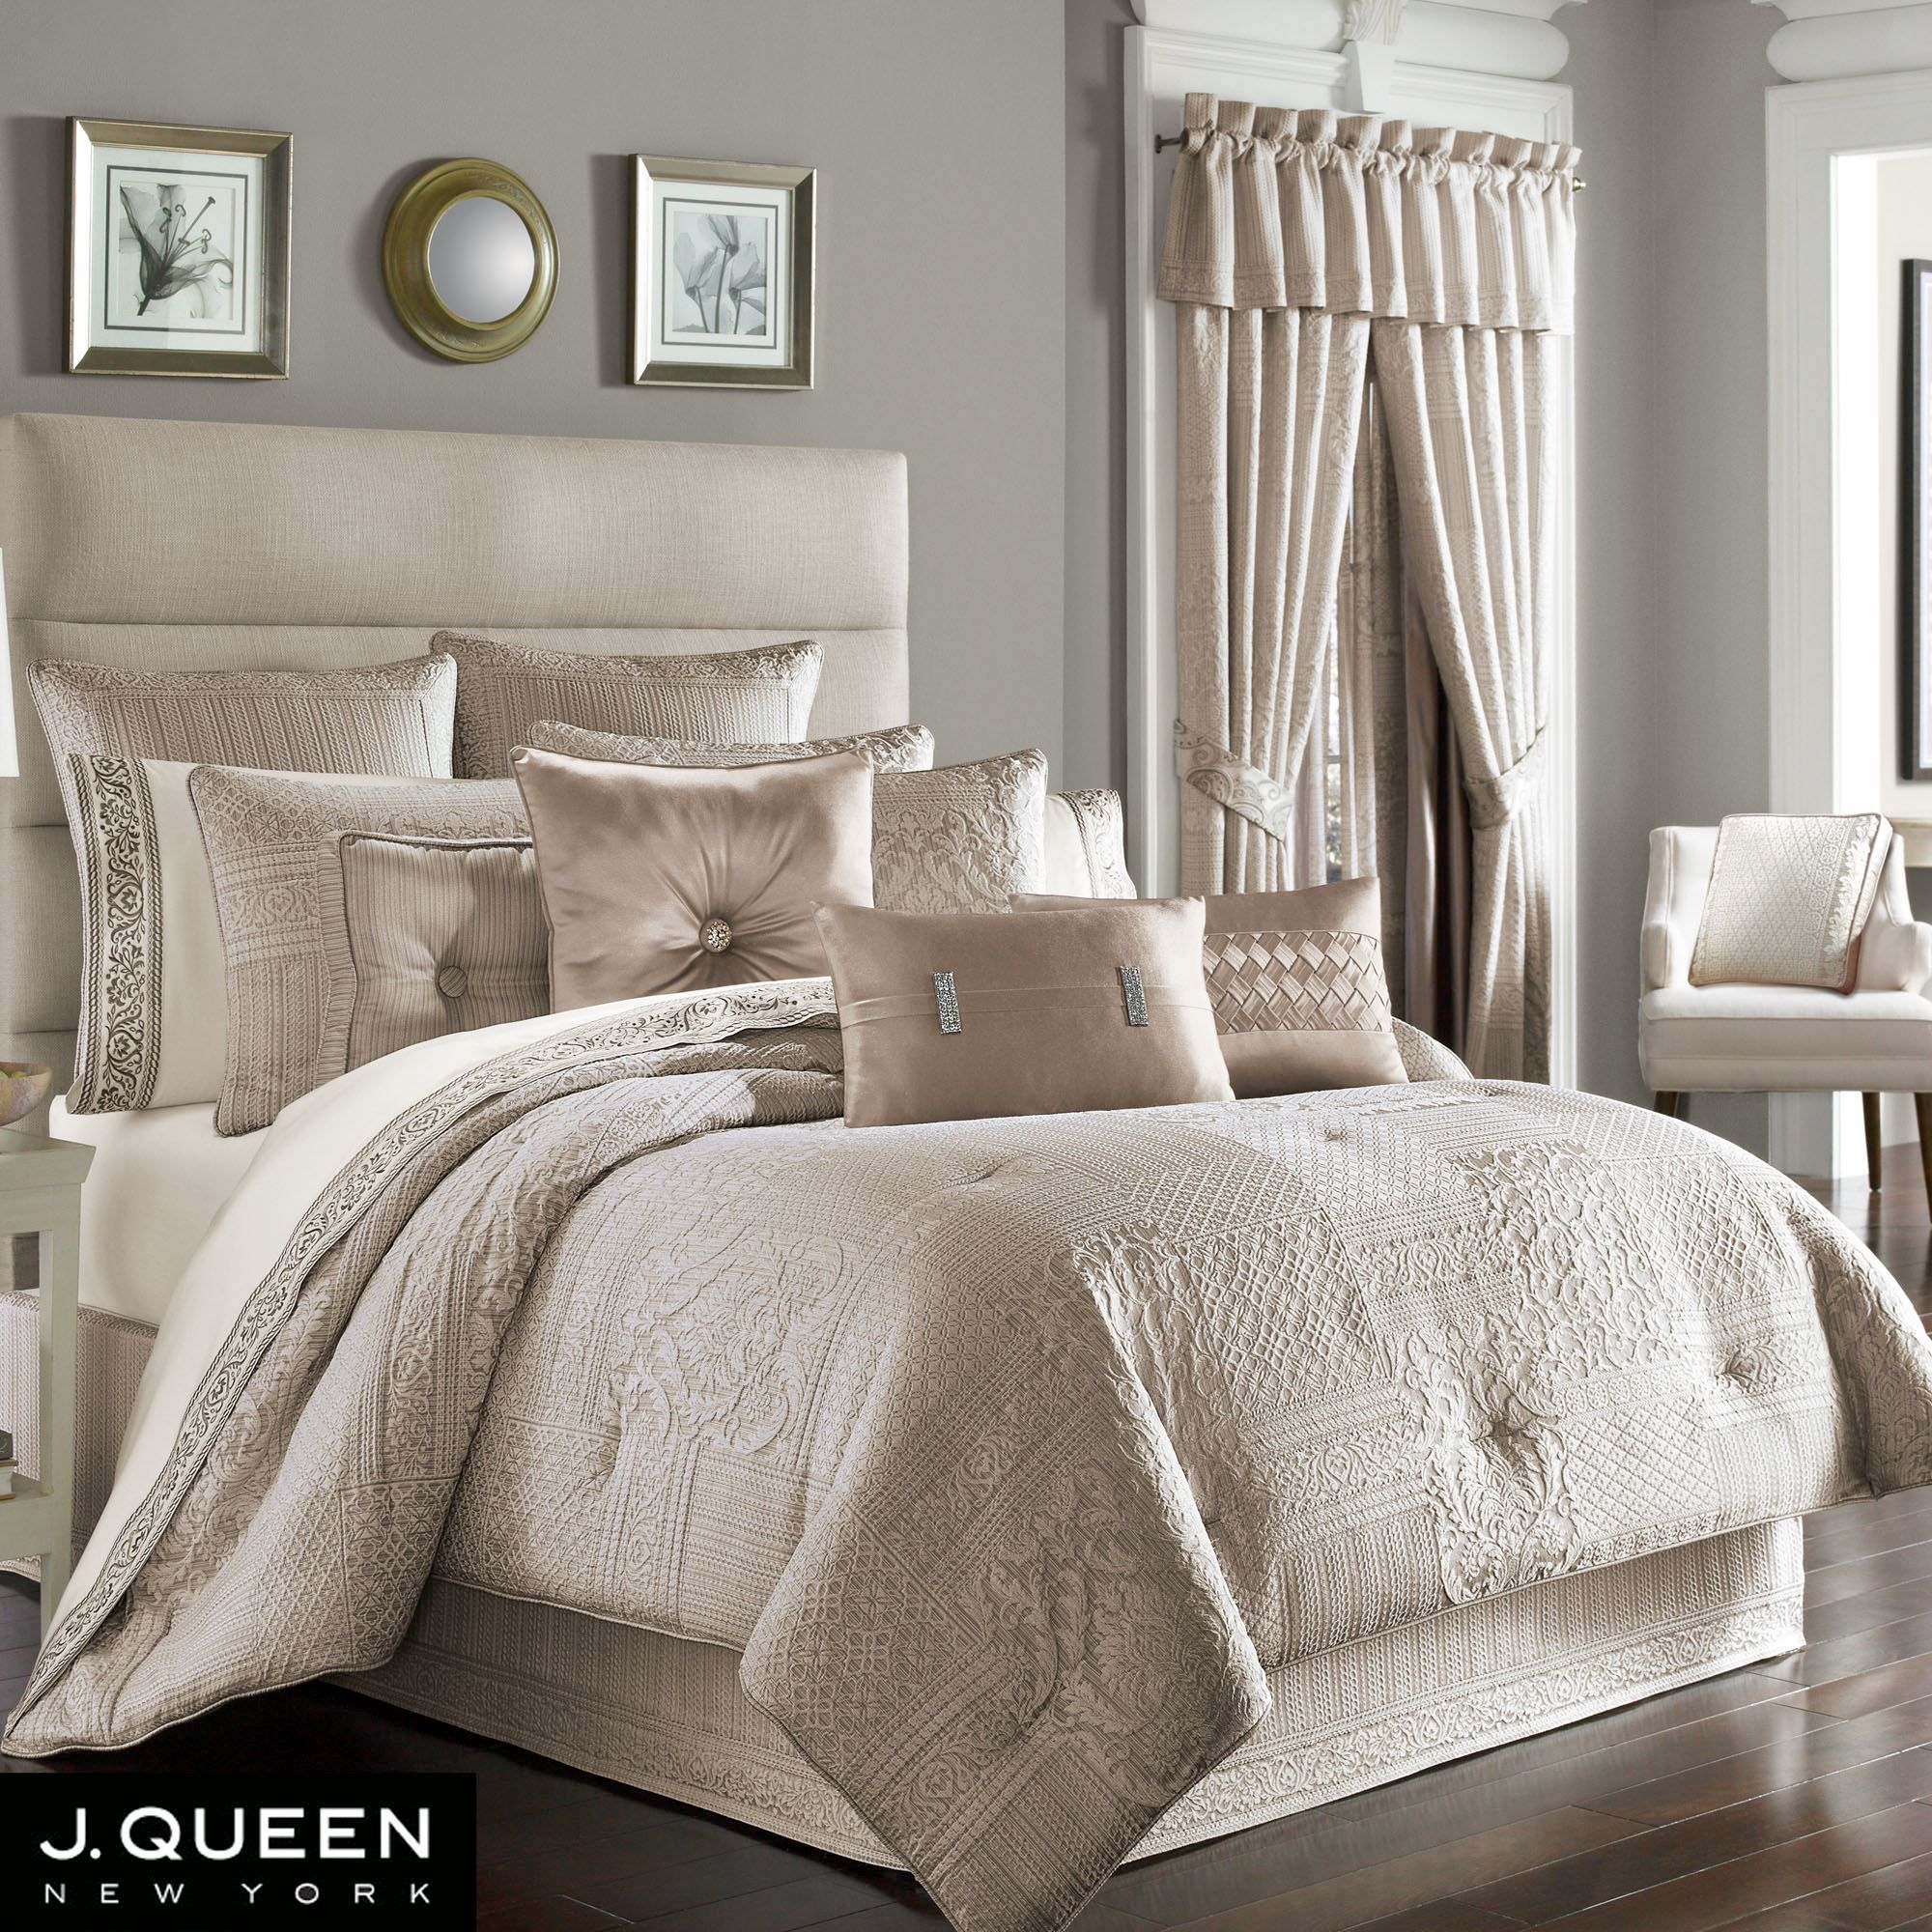 Wilmington Beige Comforter Bedding By J Queen New York Beige Comforter Luxury Bedding Luxury Comforter Sets